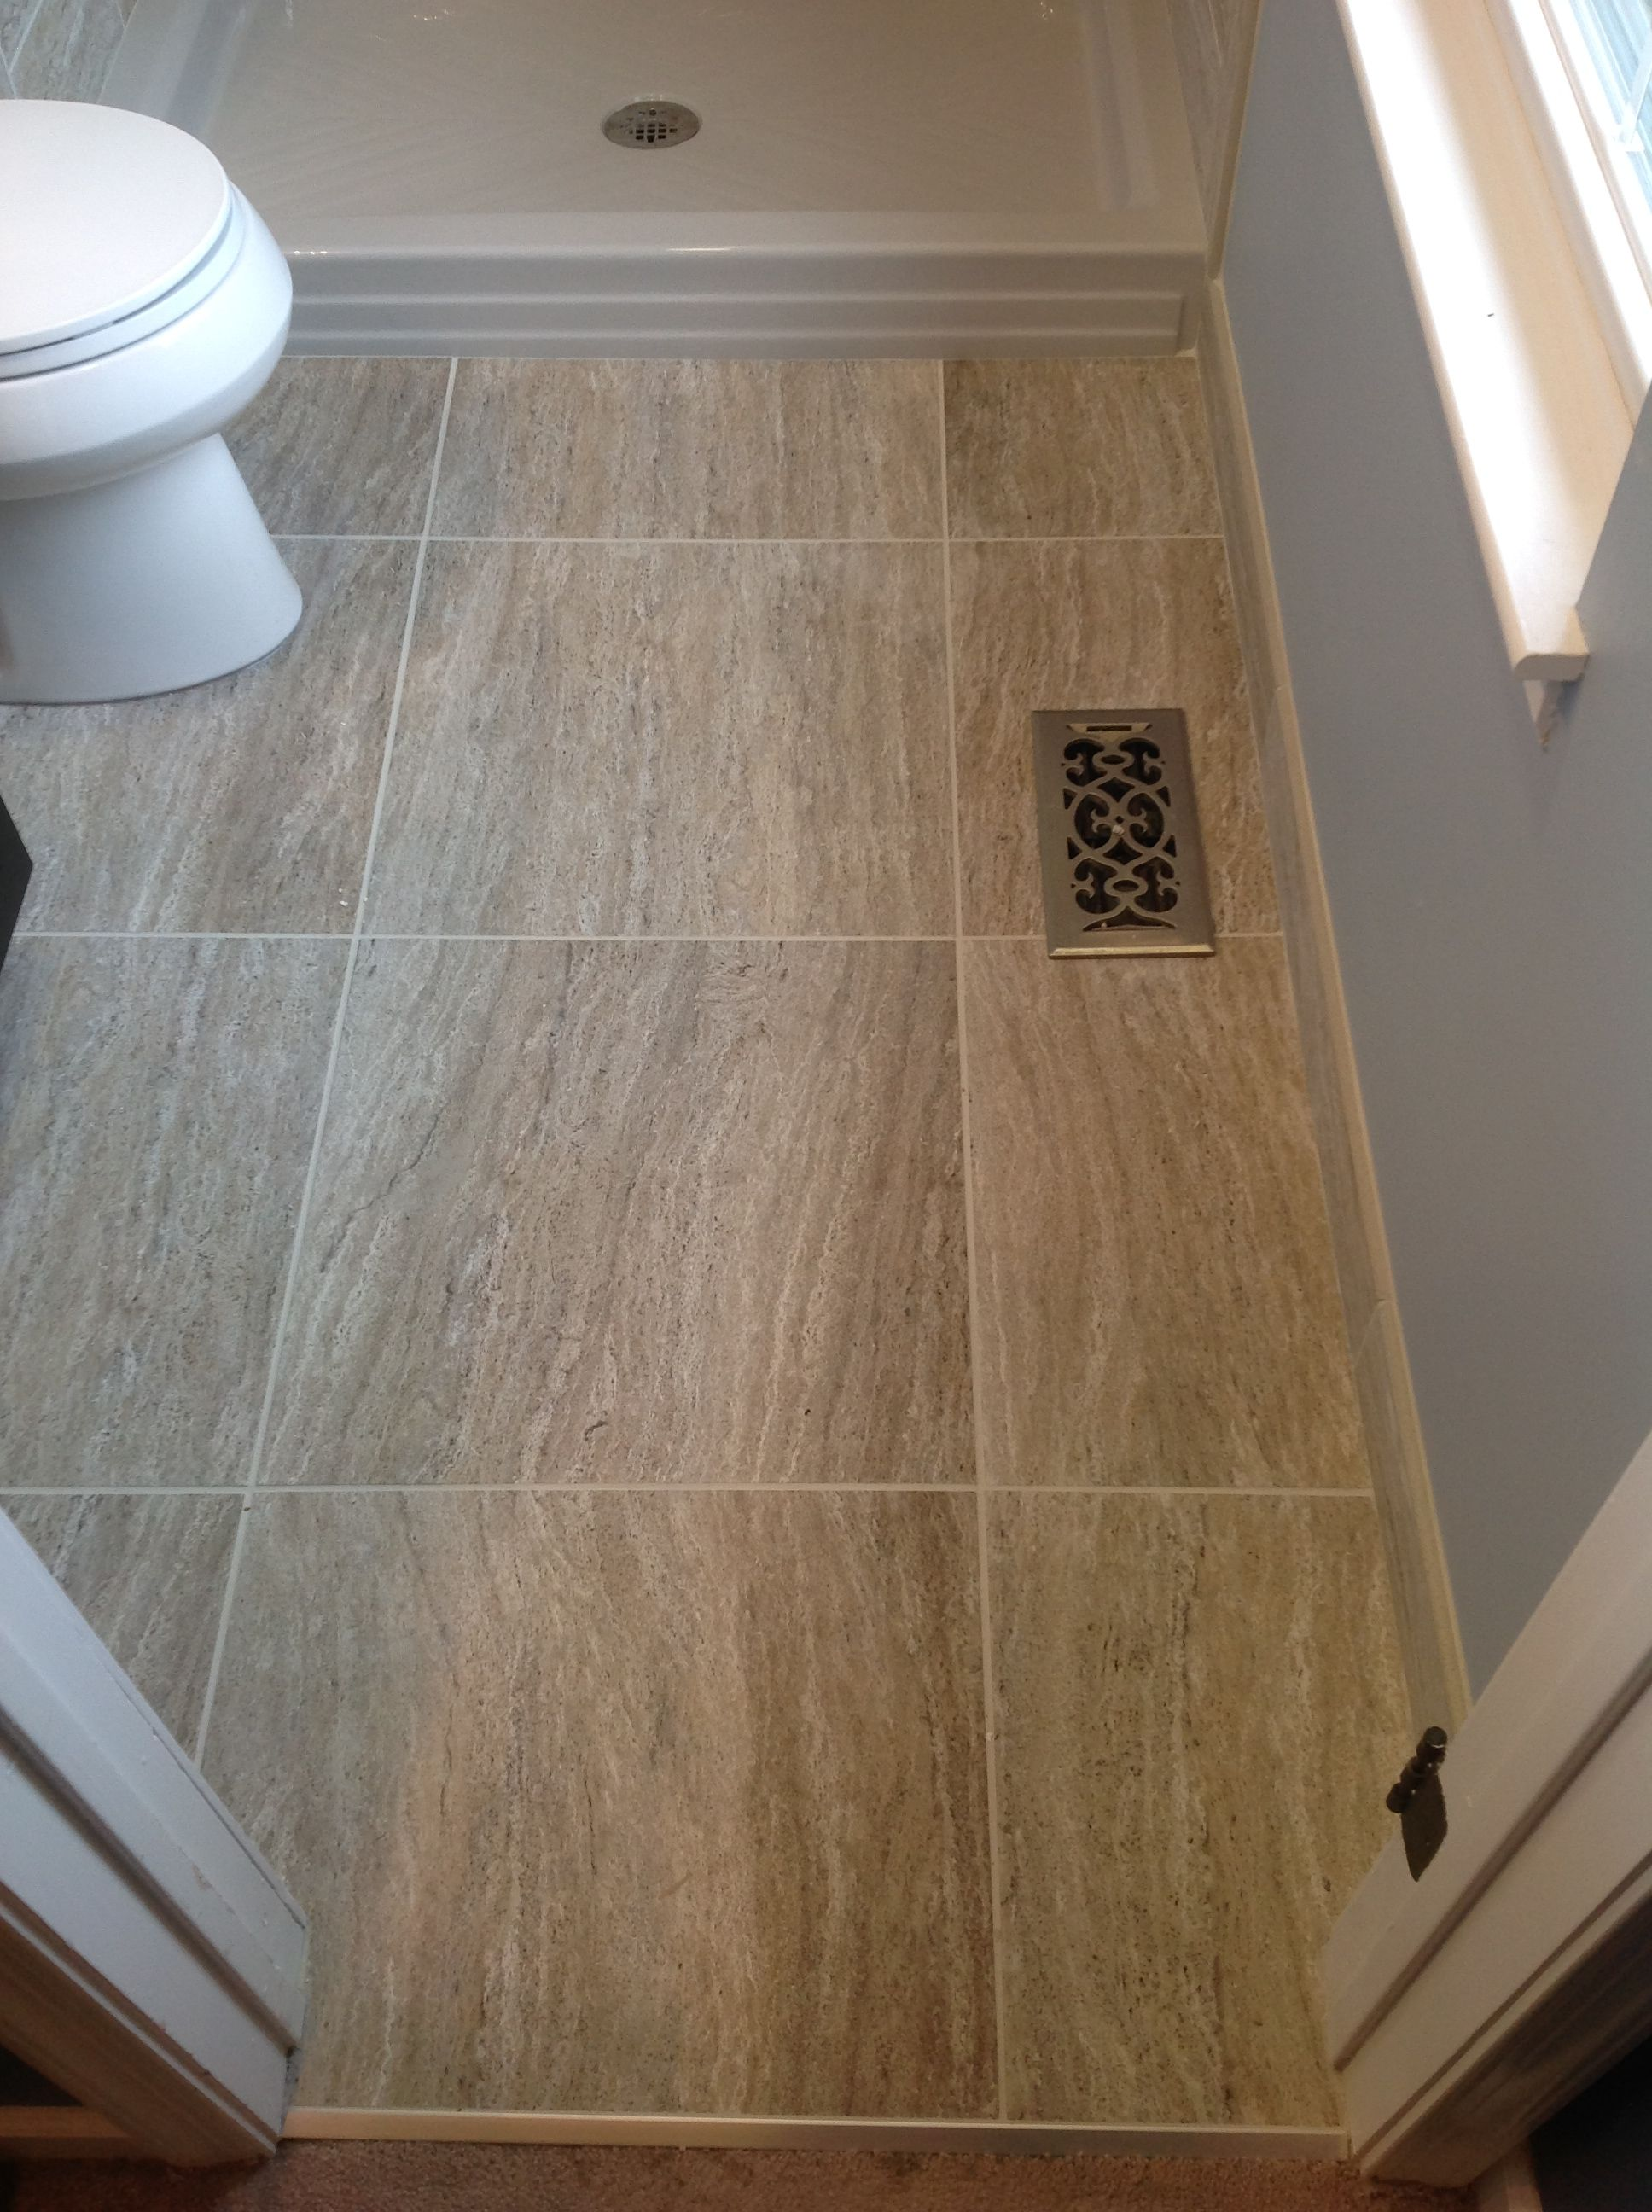 Tile work in bathrooms - Marazzi Silk Elegant Floor Tiles In A X Floor Space Large Format Tiles Work Nicely In A Small Bathroom